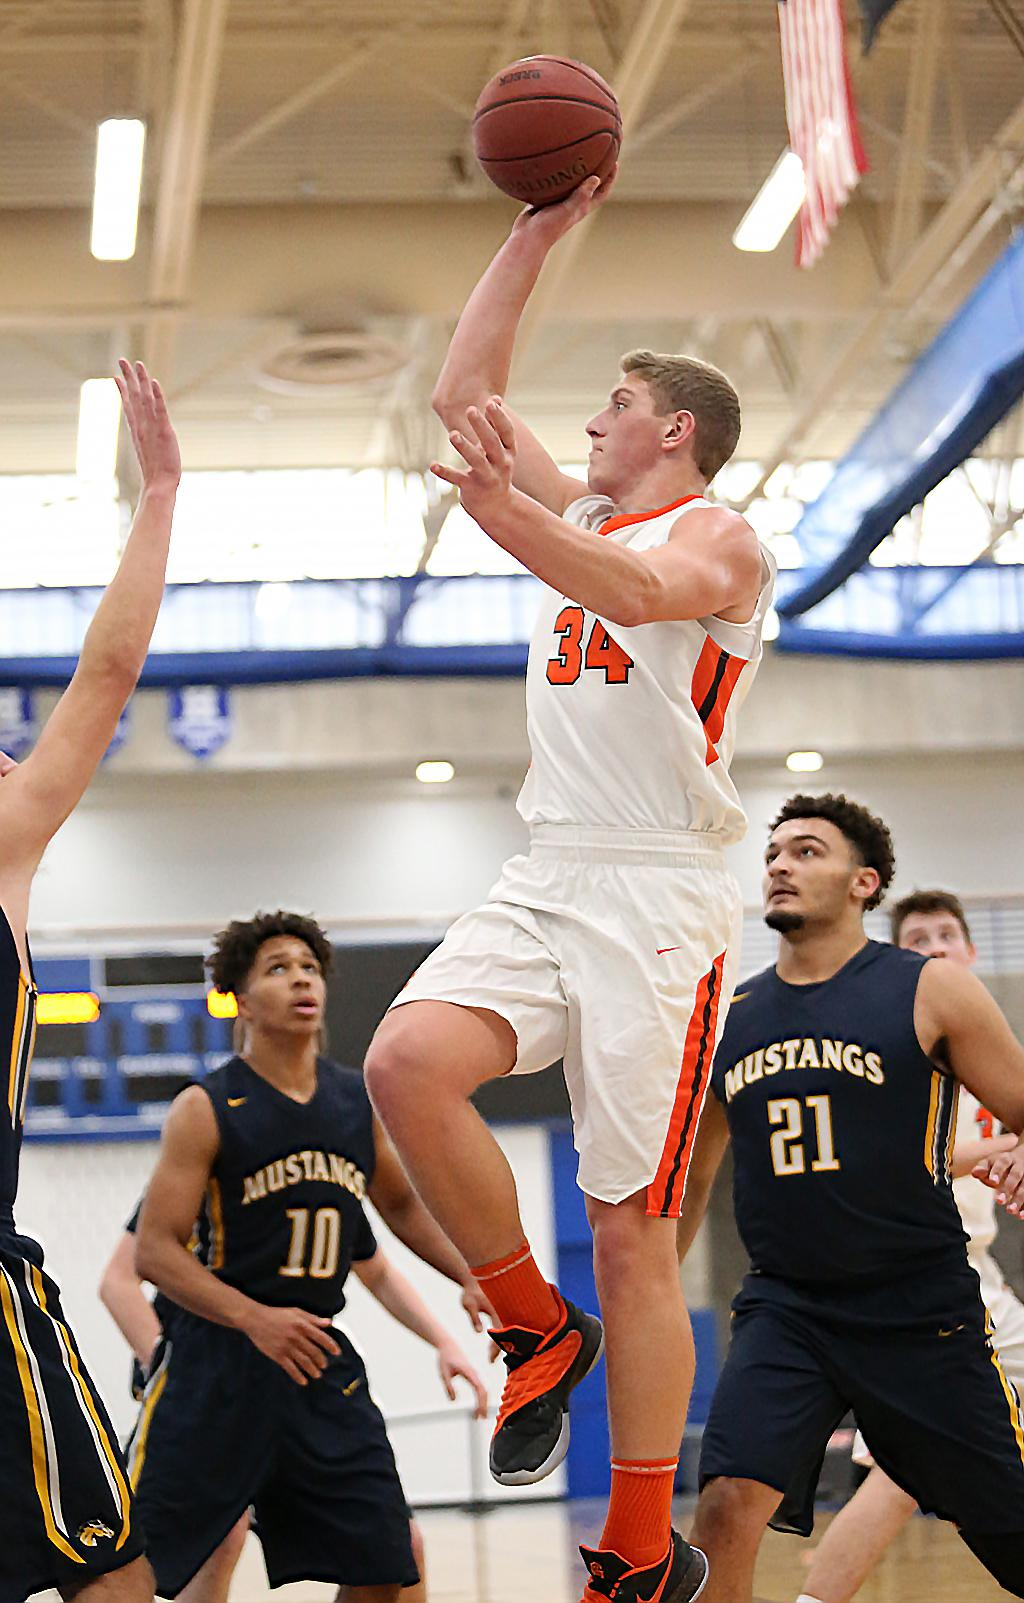 Reid Gastner (34) led the Tigers scoring with 19 points, including five three-pointers. Lake City fell to Breck 57-52 at Hopkins High School on Saturday afternoon. Photo by Cheryl Myers, SportsEngine